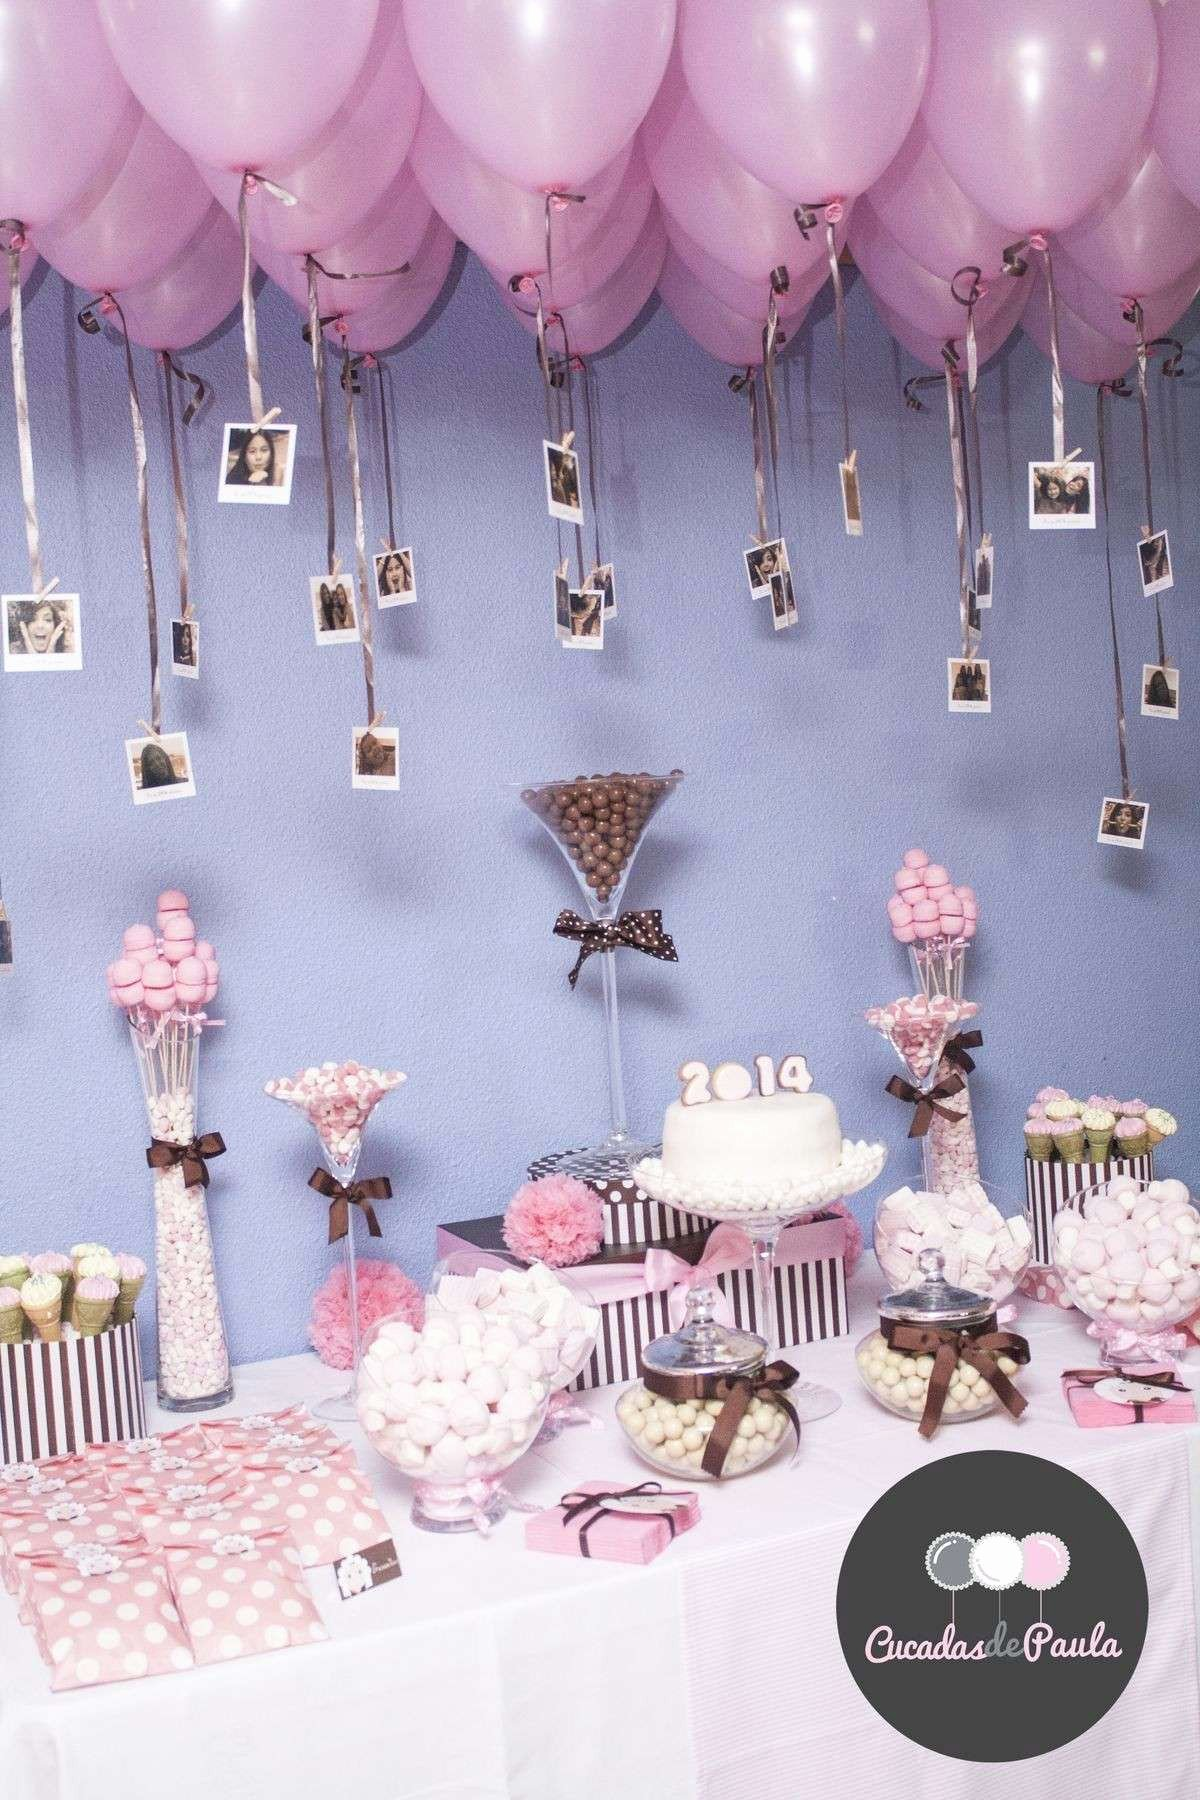 One Year Birthday Decoration Ideas New Awesome First Birthday Decoration Ideas at Home for Girl